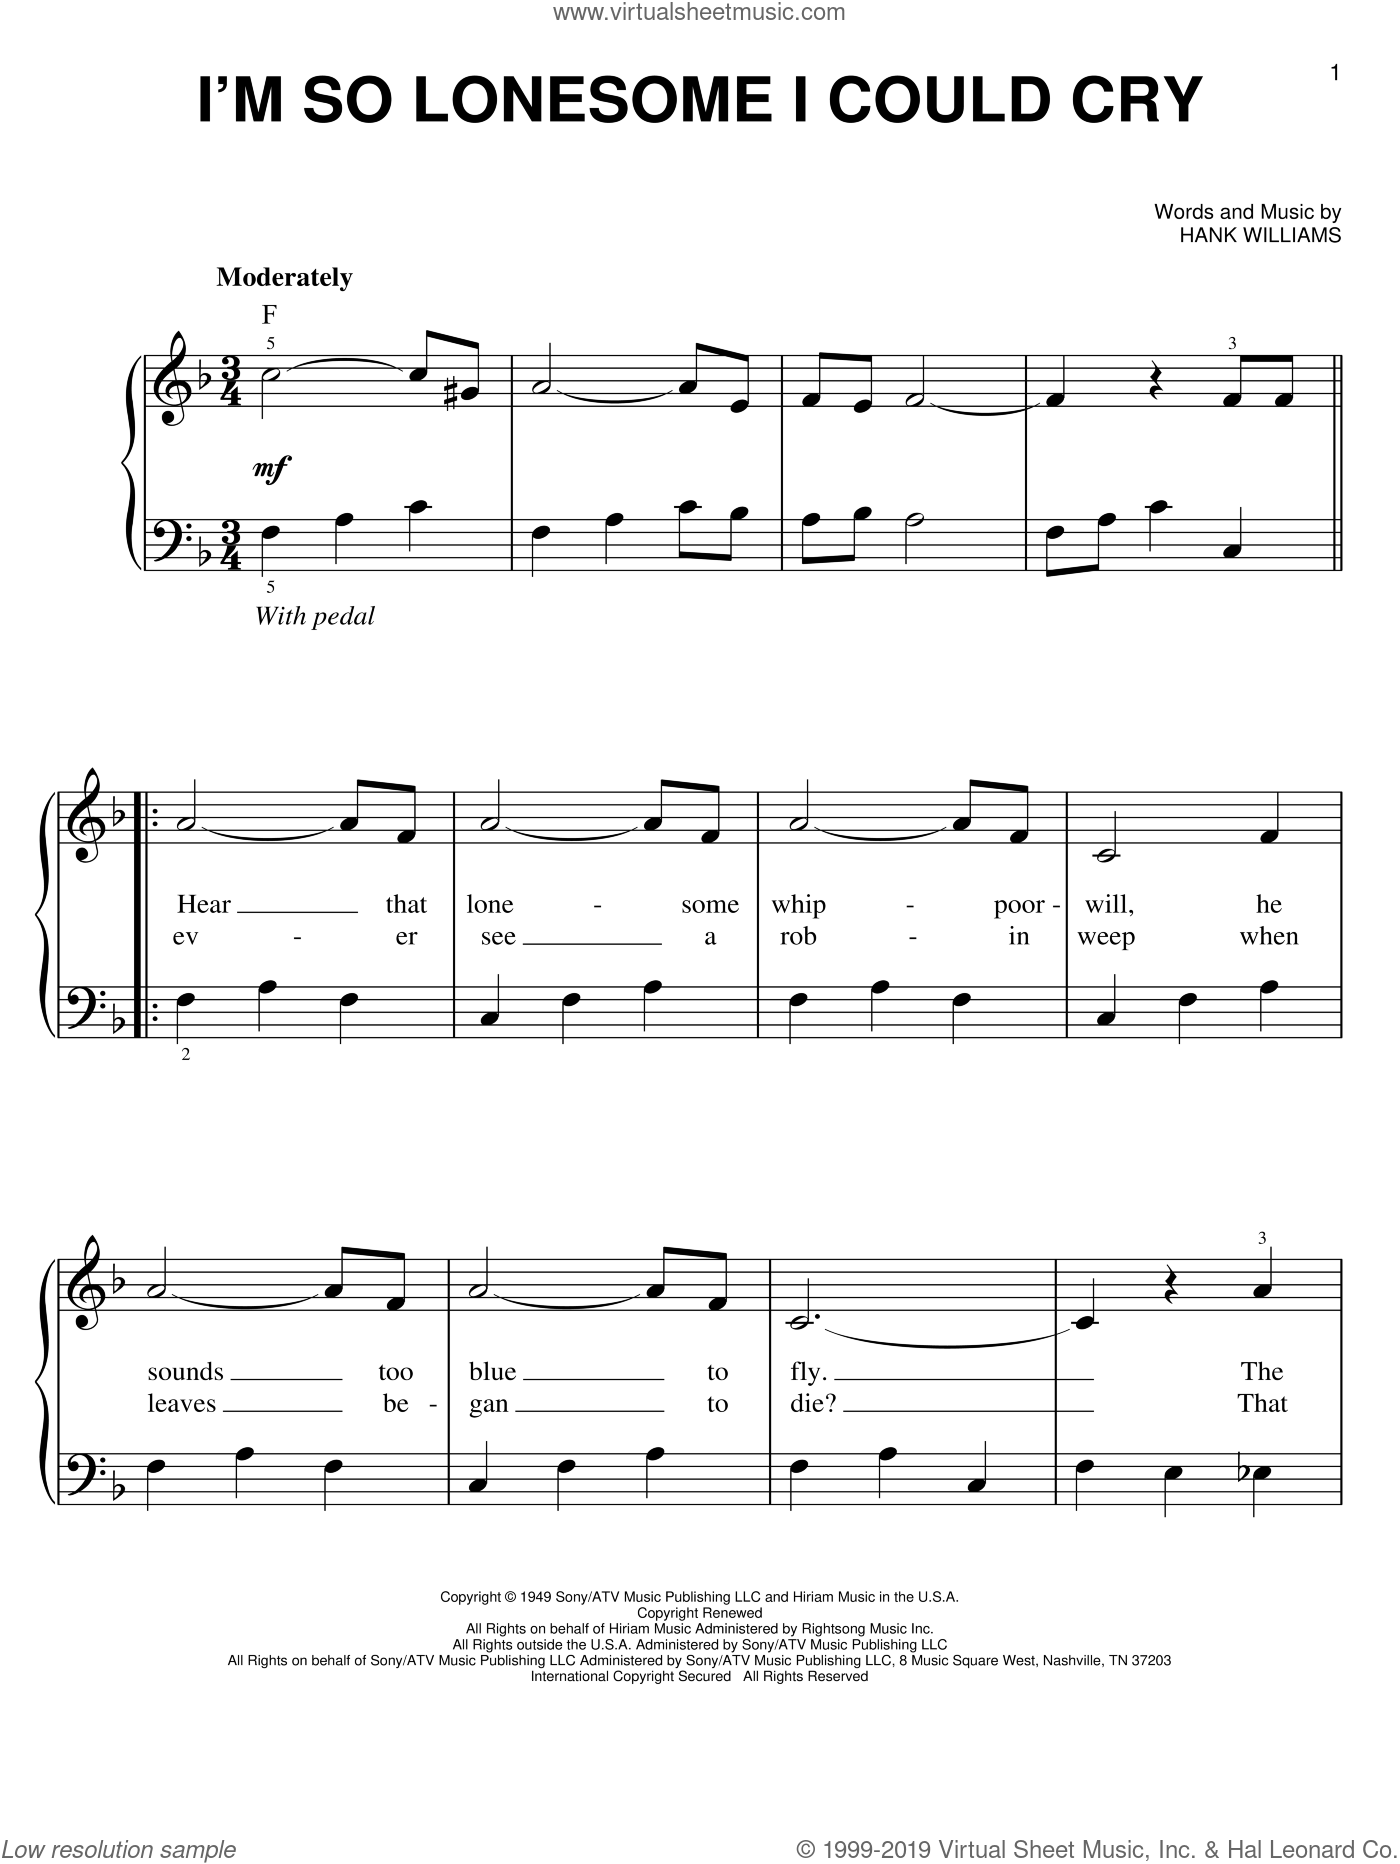 I'm So Lonesome I Could Cry sheet music for piano solo by Hank Williams and Elvis Presley, easy skill level